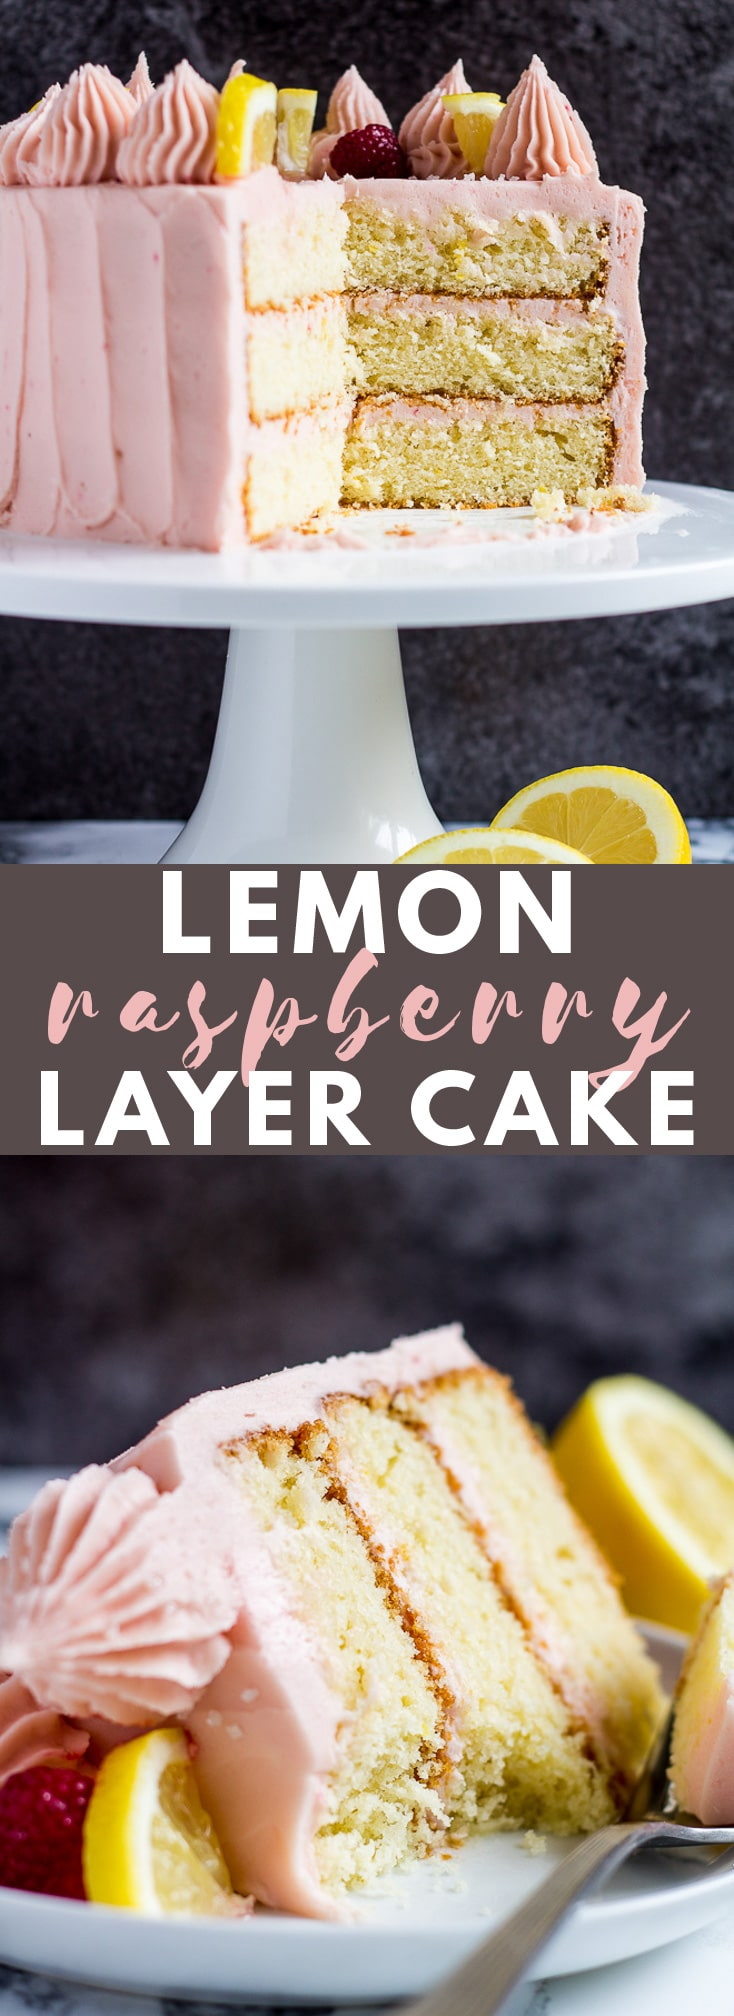 Lemon Raspberry Layer Cake – Deliciously moist and fluffy lemon infused cake frosted with a creamy raspberry buttercream, and topped with fresh raspberries and lemon slices!